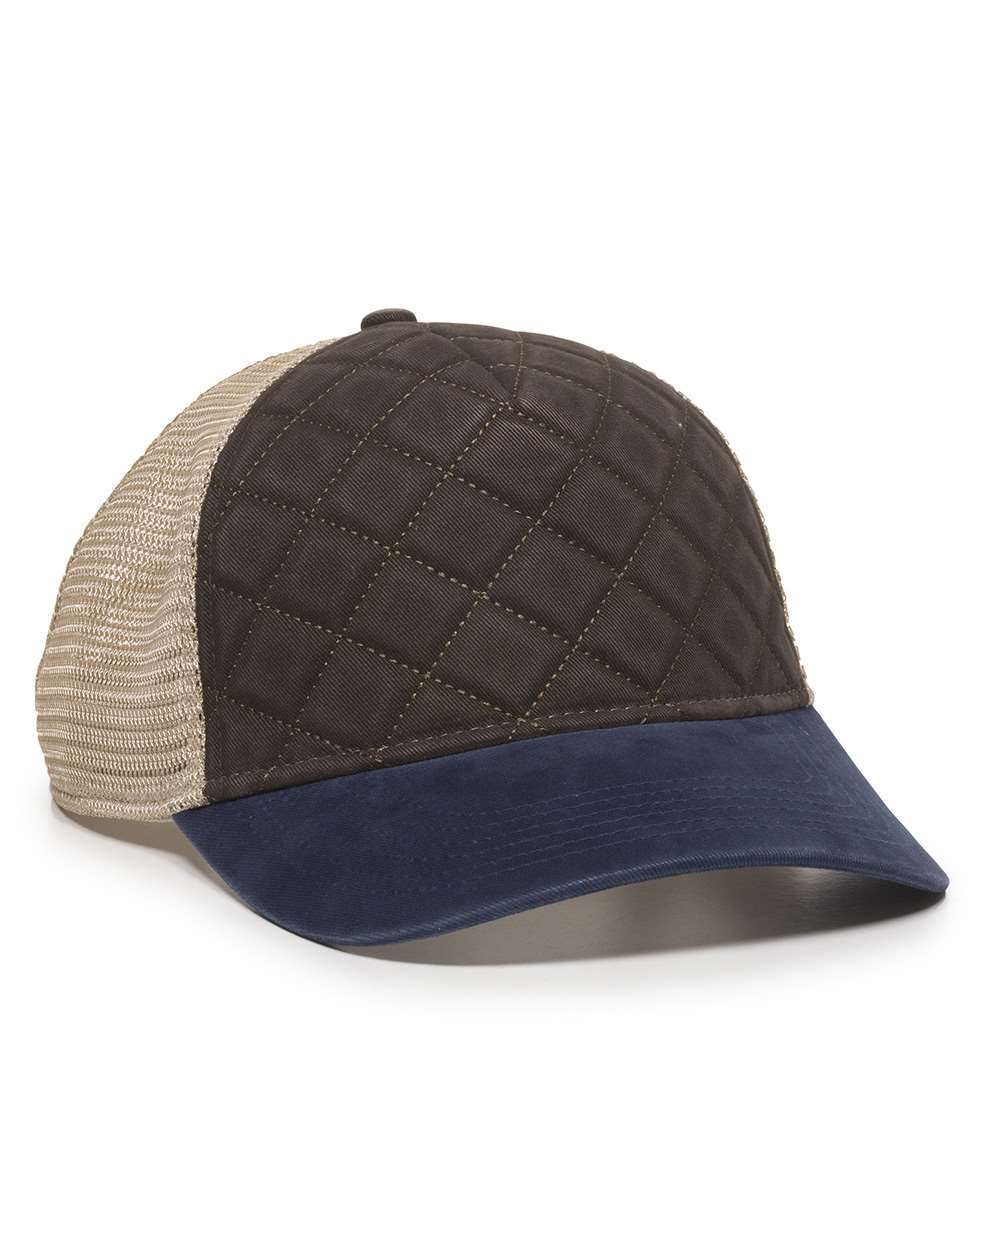 Outdoor Cap QLT100M - Quilted Front Mesh Back Cap